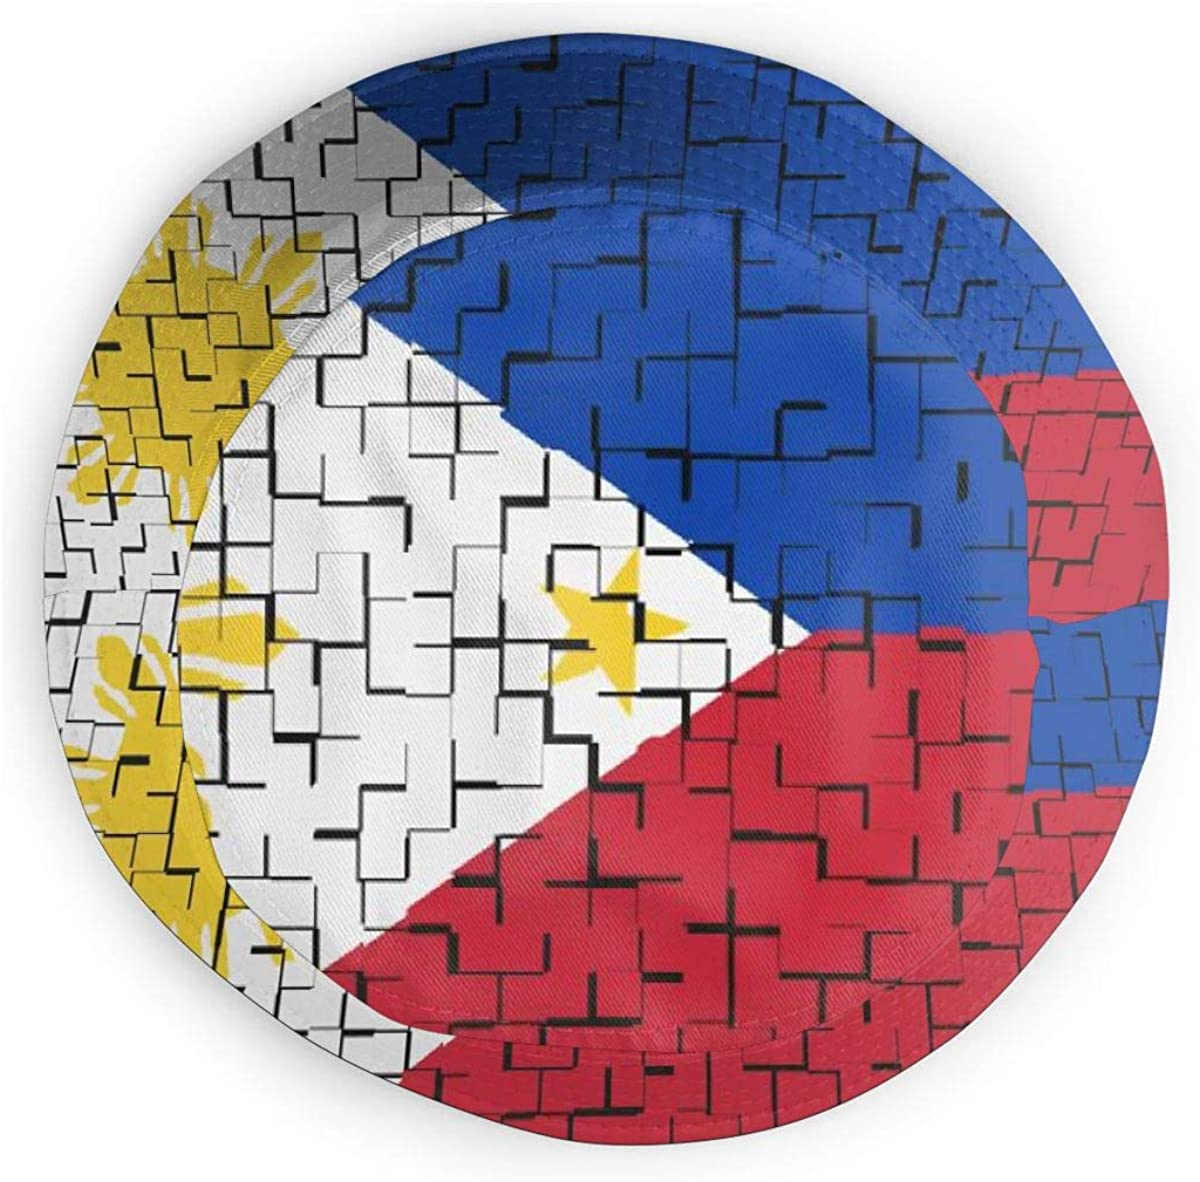 Classic Trucker Mesh Cap for Unisex Boys and Girls 100/% Polyester Philippine Flag Puzzle Mesh Hat